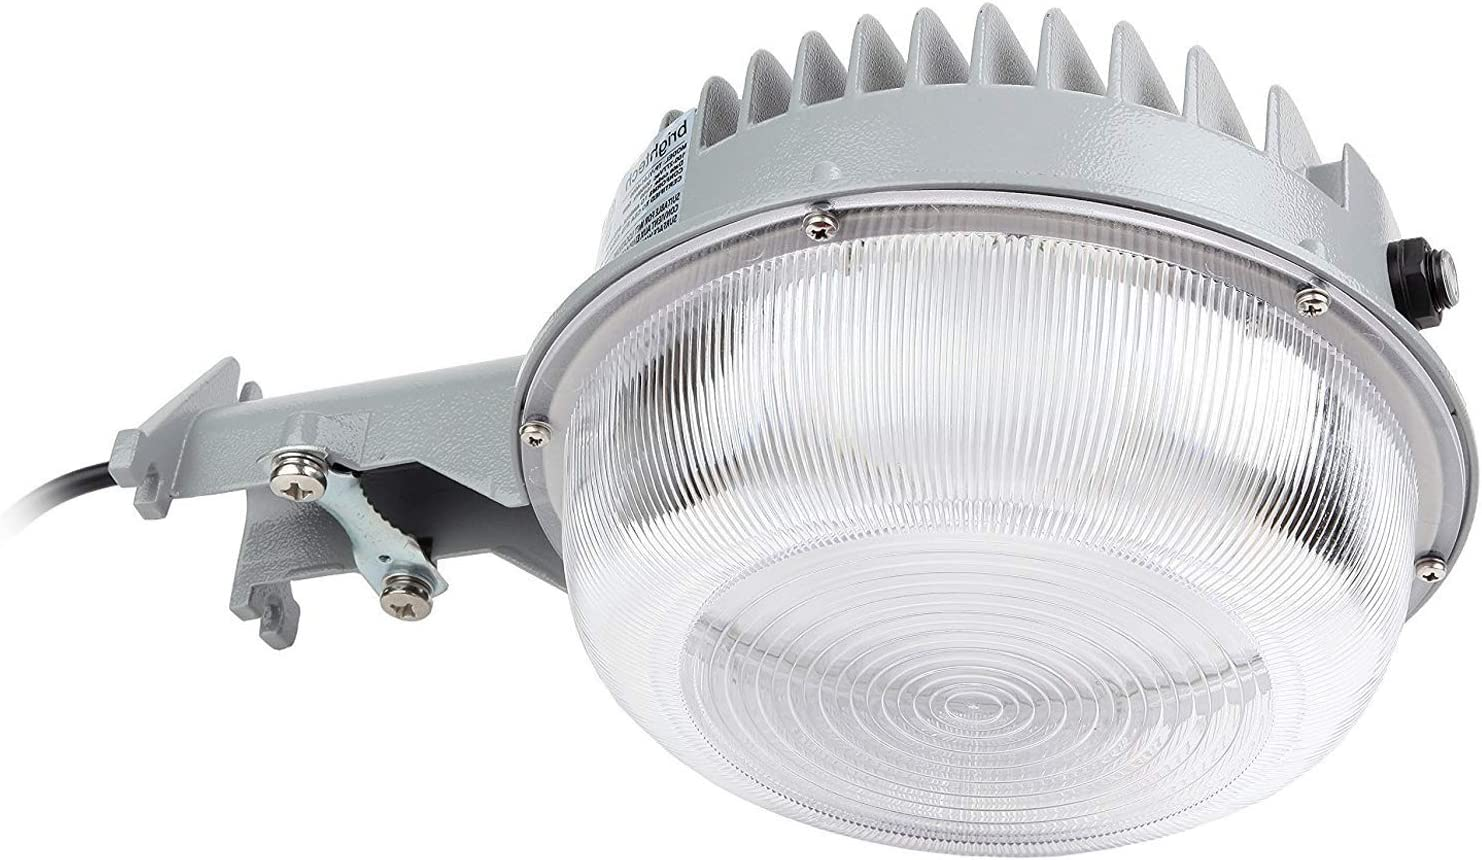 120V Electric HPS High Pressure Sodium Outdoor 50W Security Light Dusk to Dawn